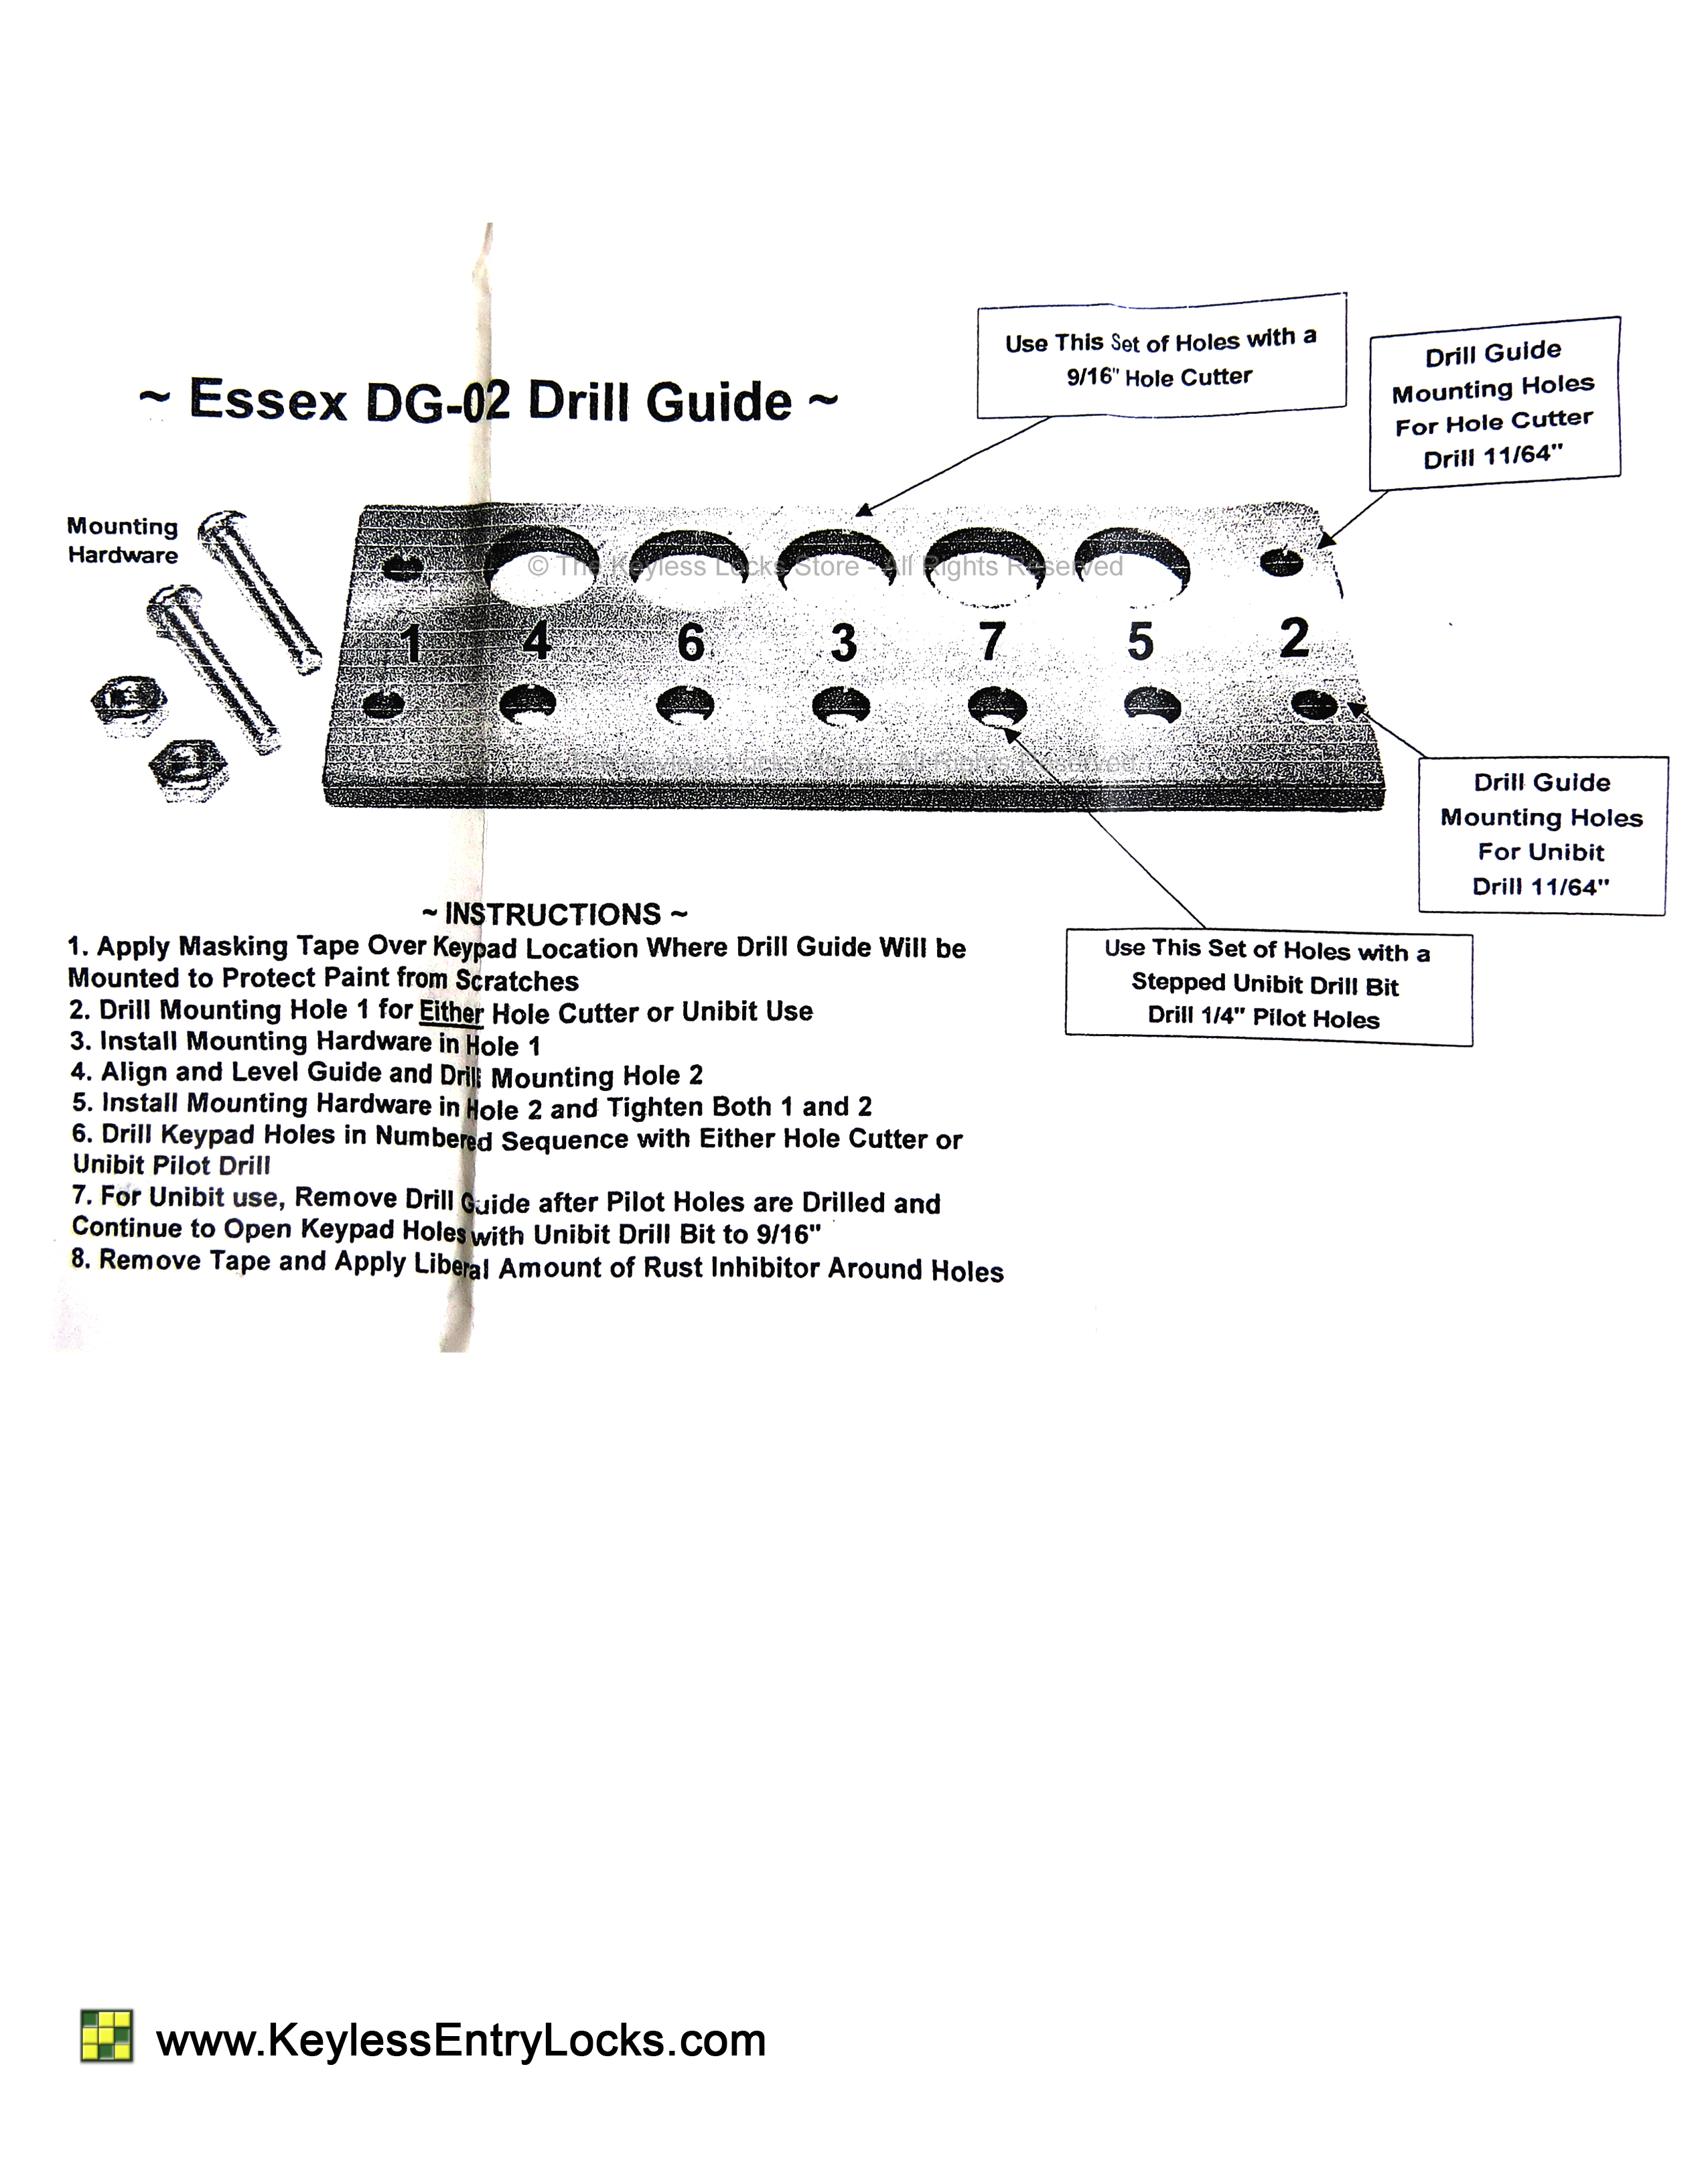 Essex Drill Guide Instructions